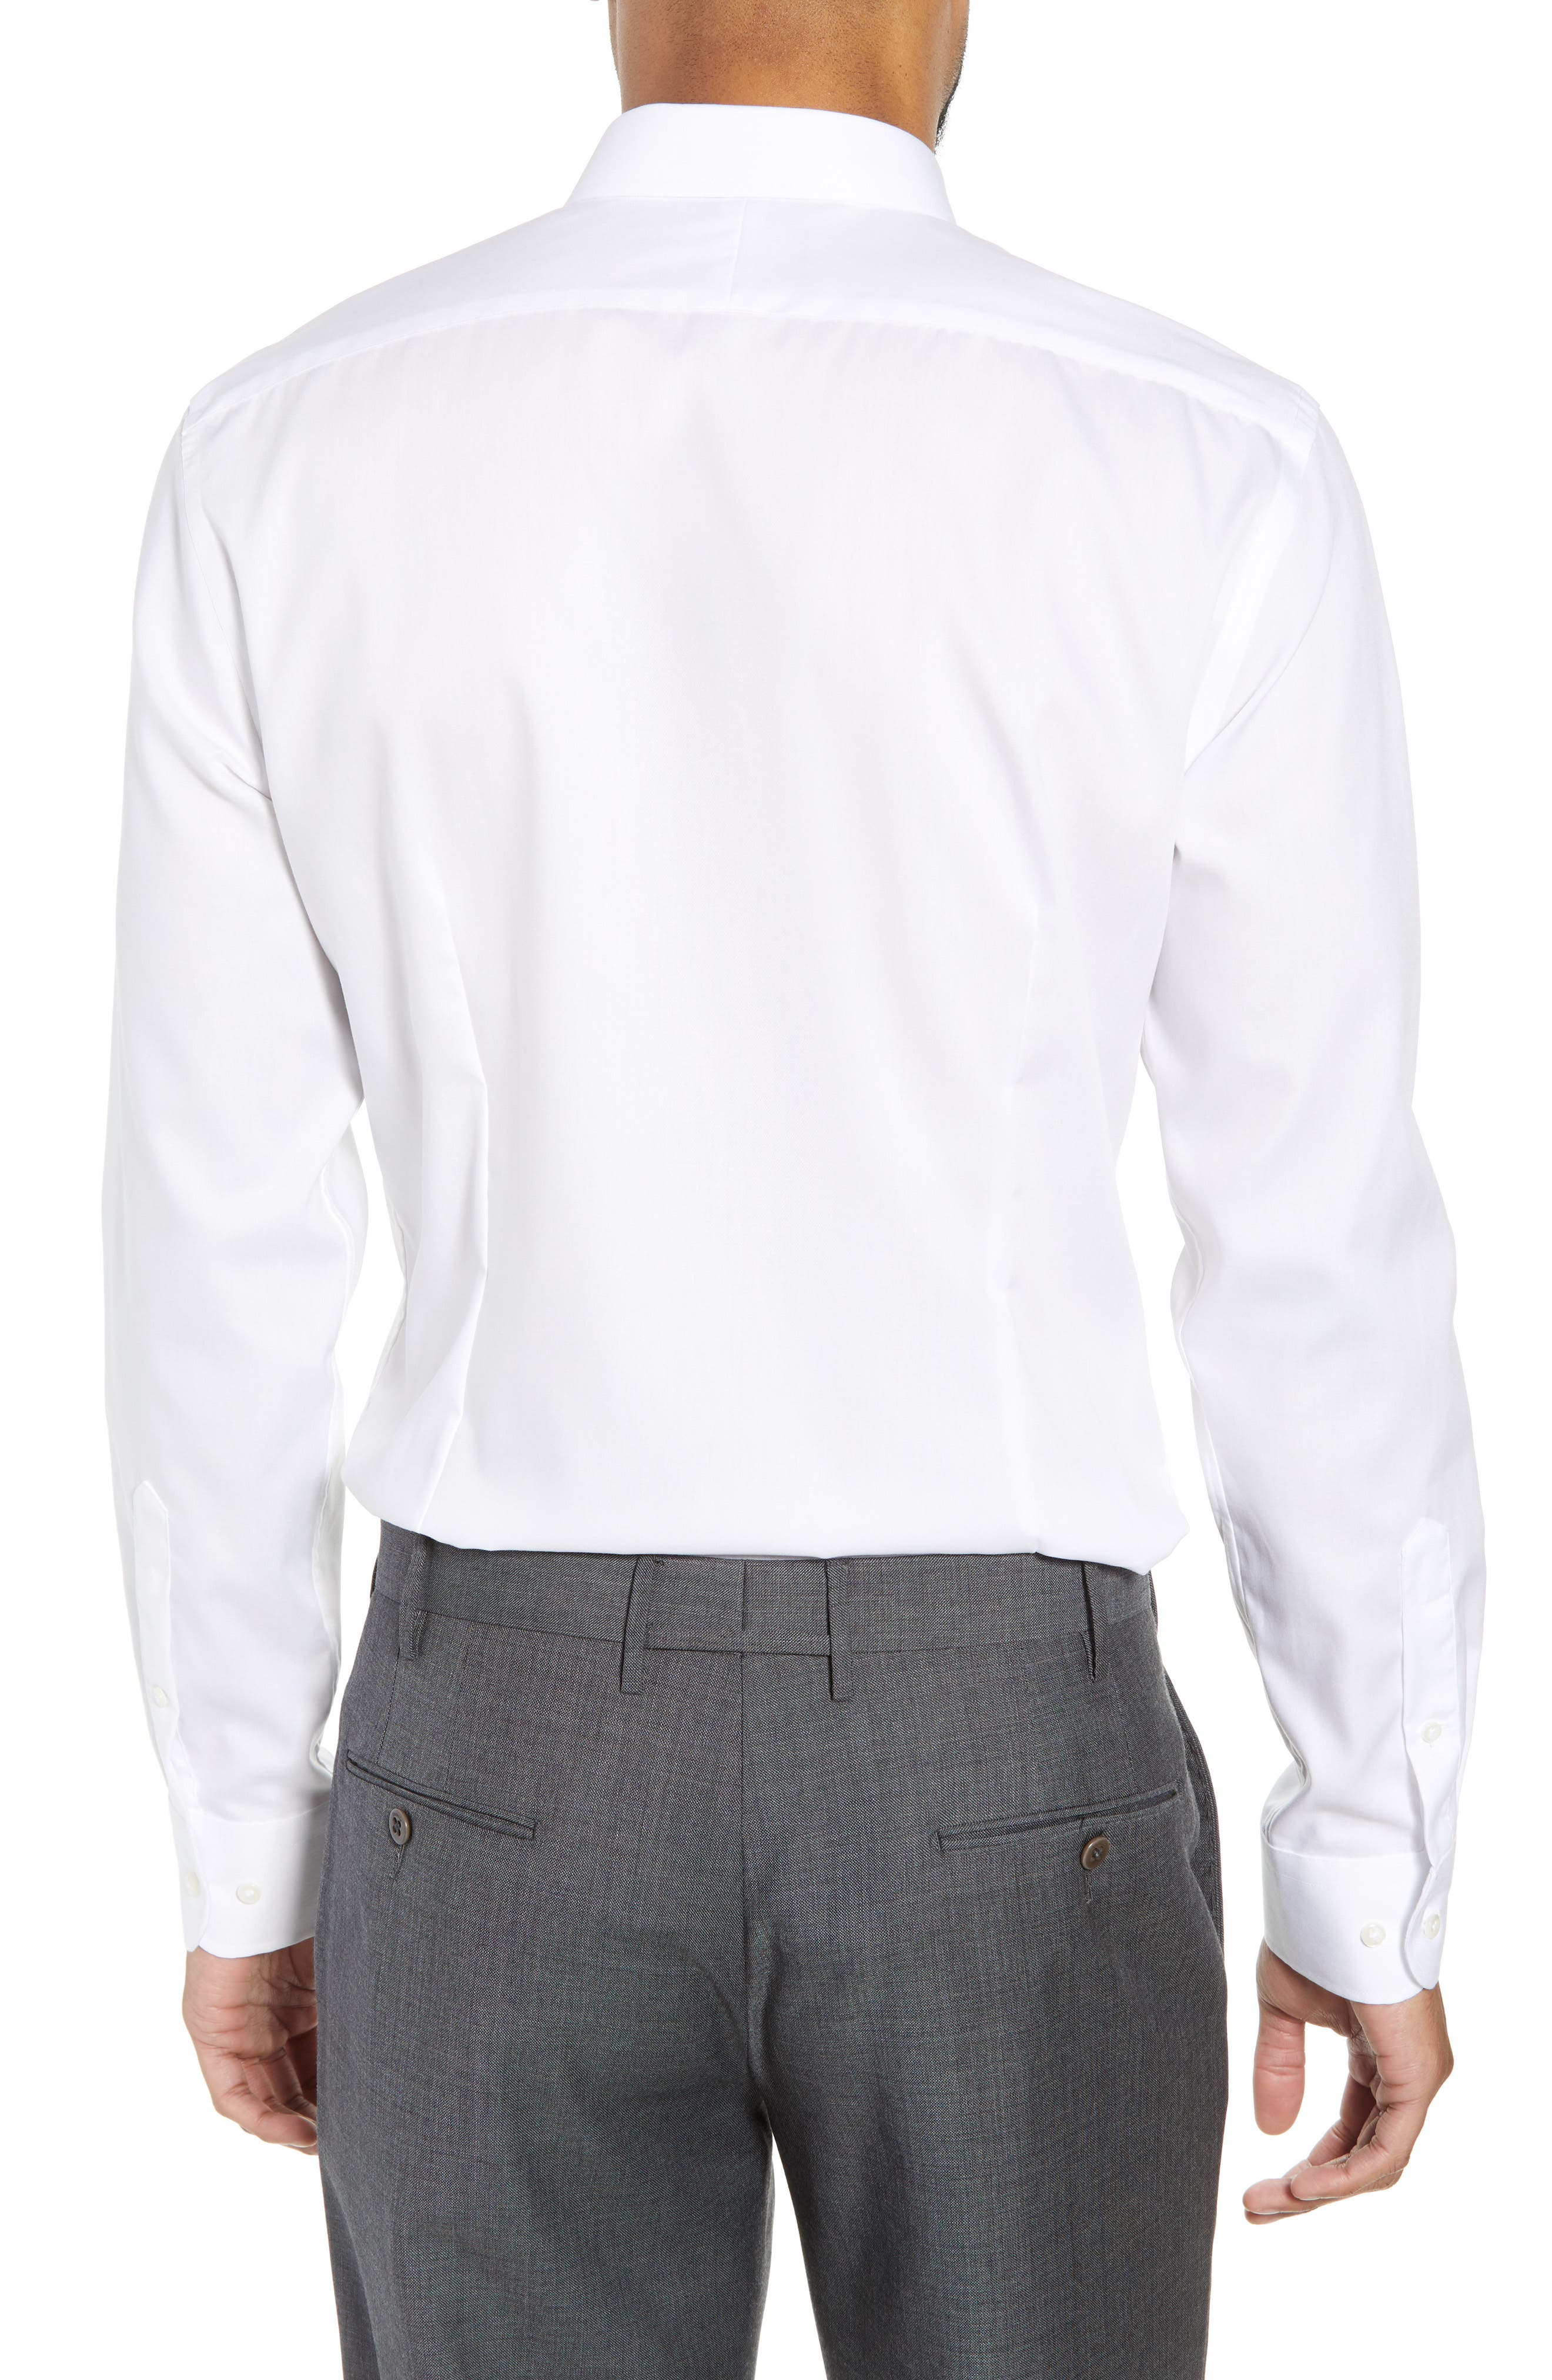 Extra Trim Fit Non-Iron Solid Dress Shirt,                             Alternate thumbnail 3, color,                             White